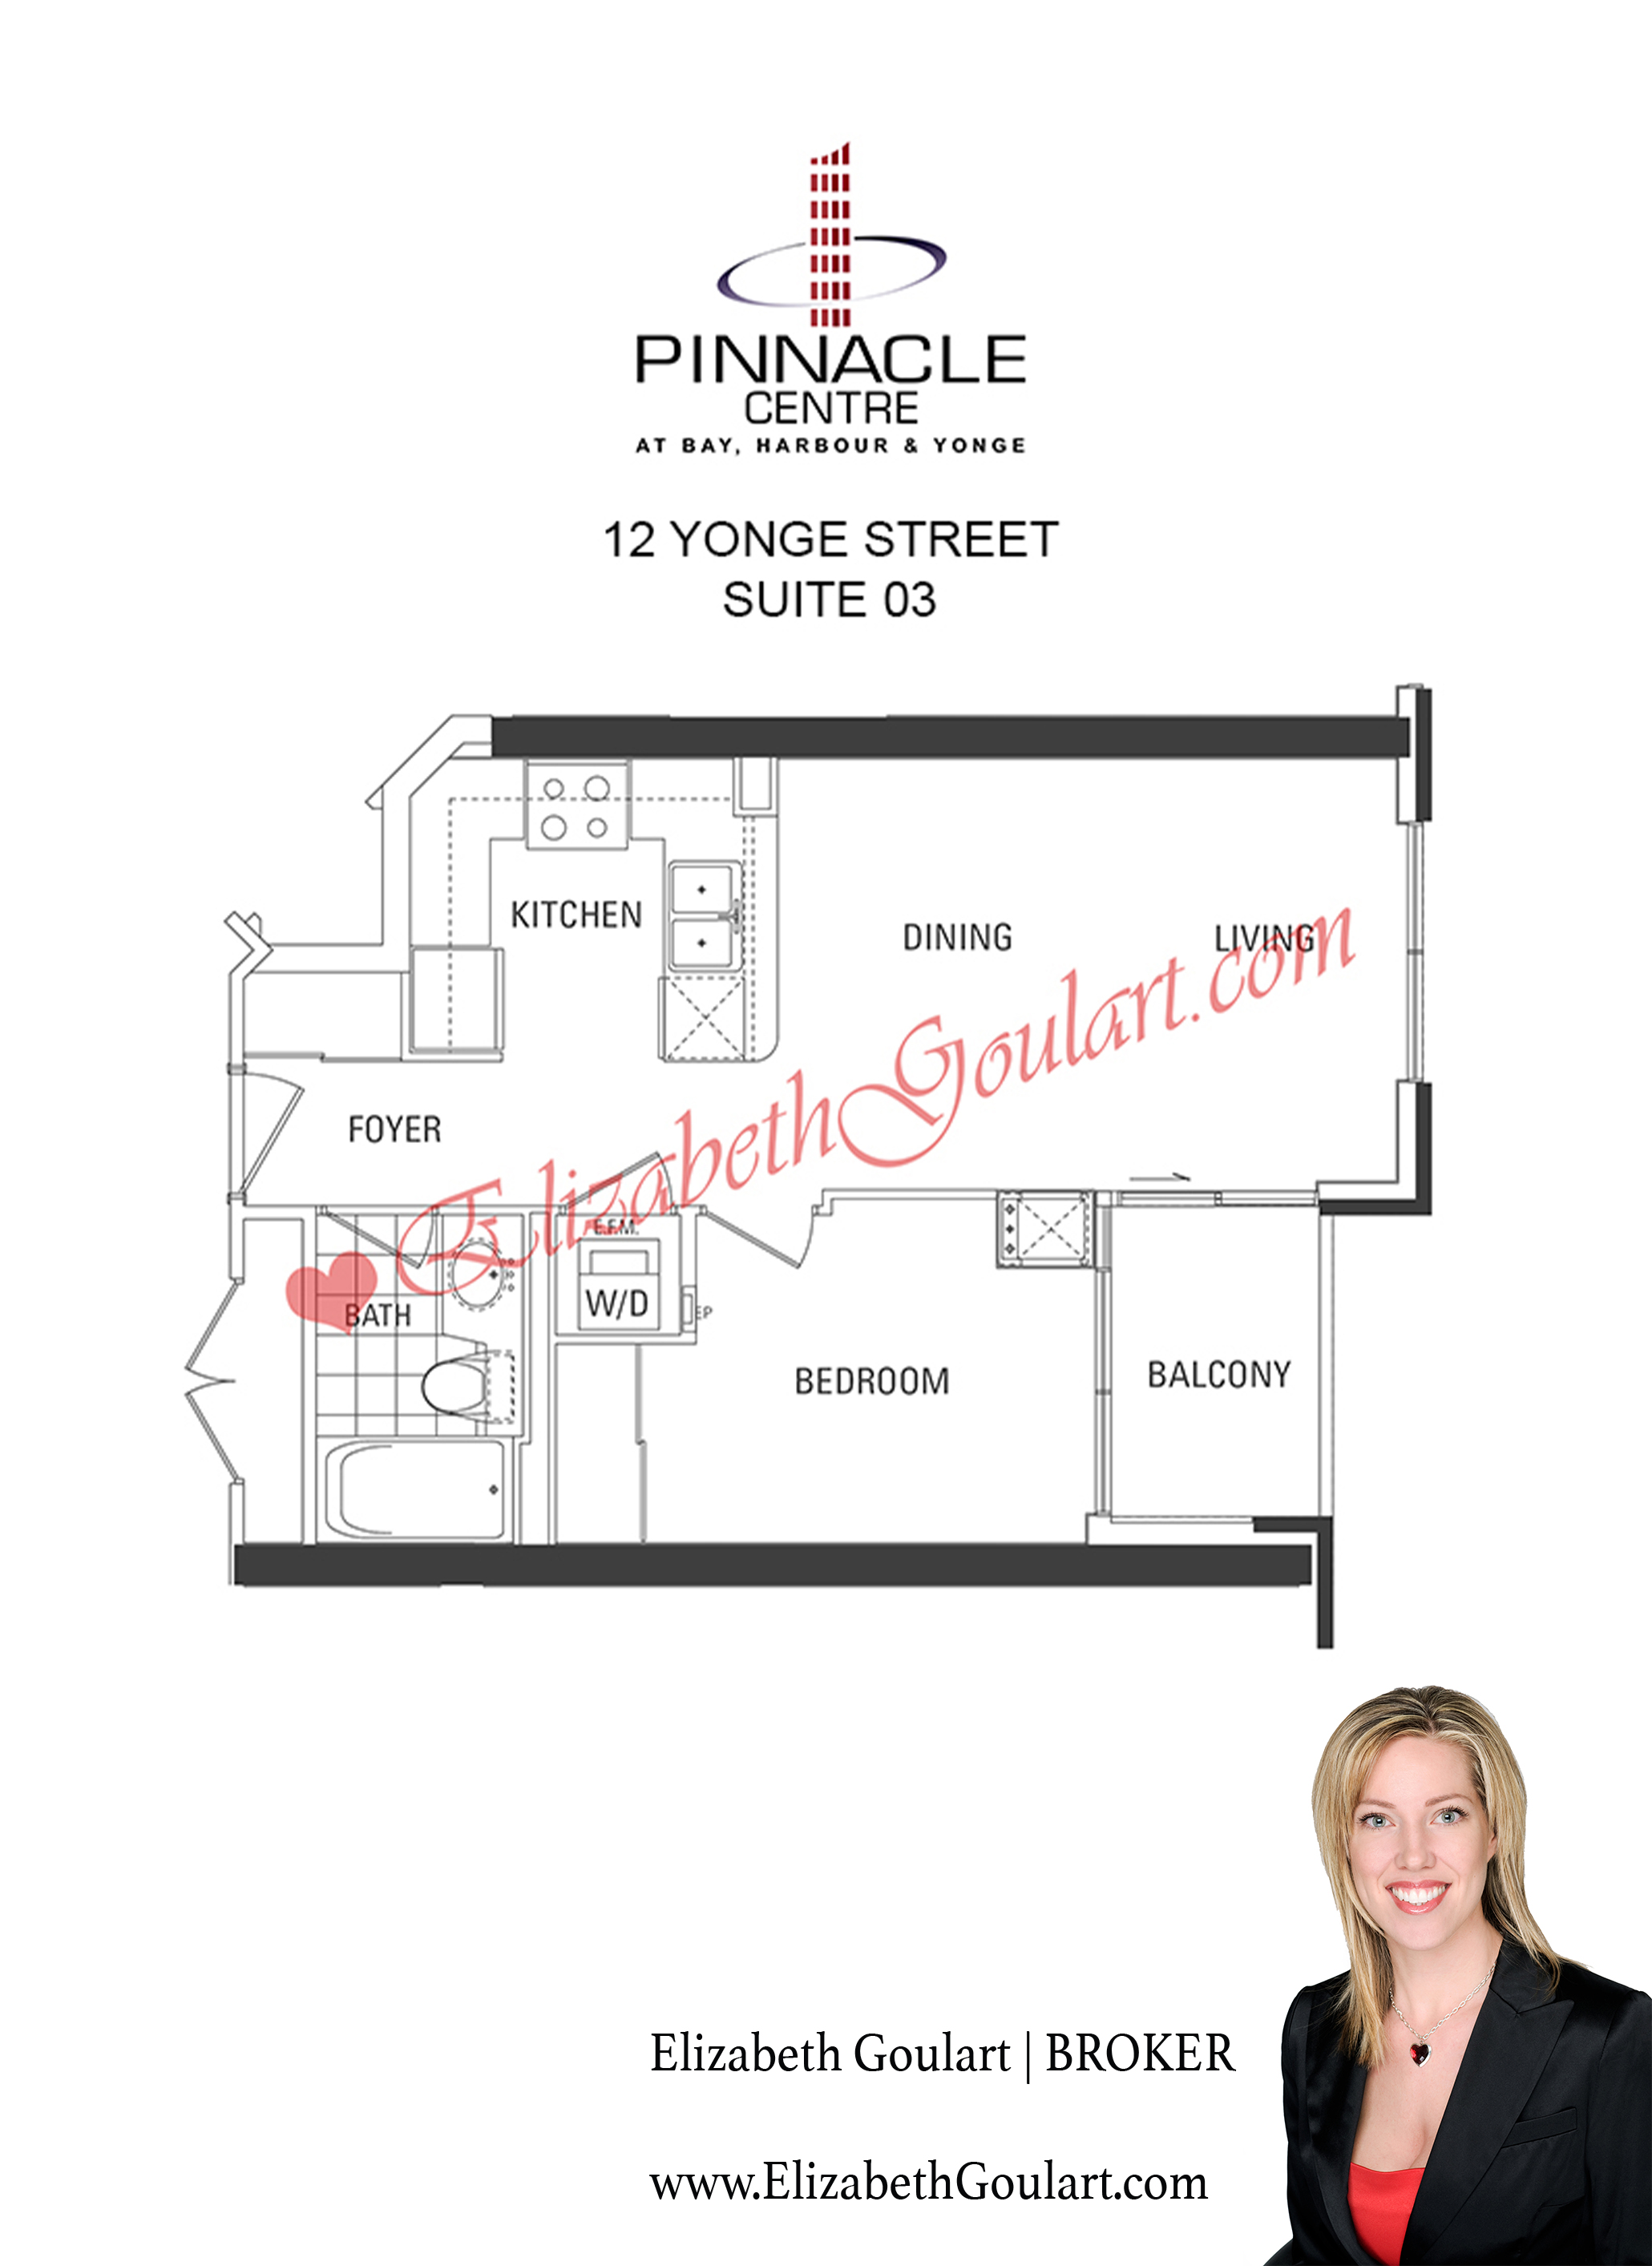 12 yonge street pinnacle centre condos floor plans 12 yonge street pinnacle centre condos floor plans